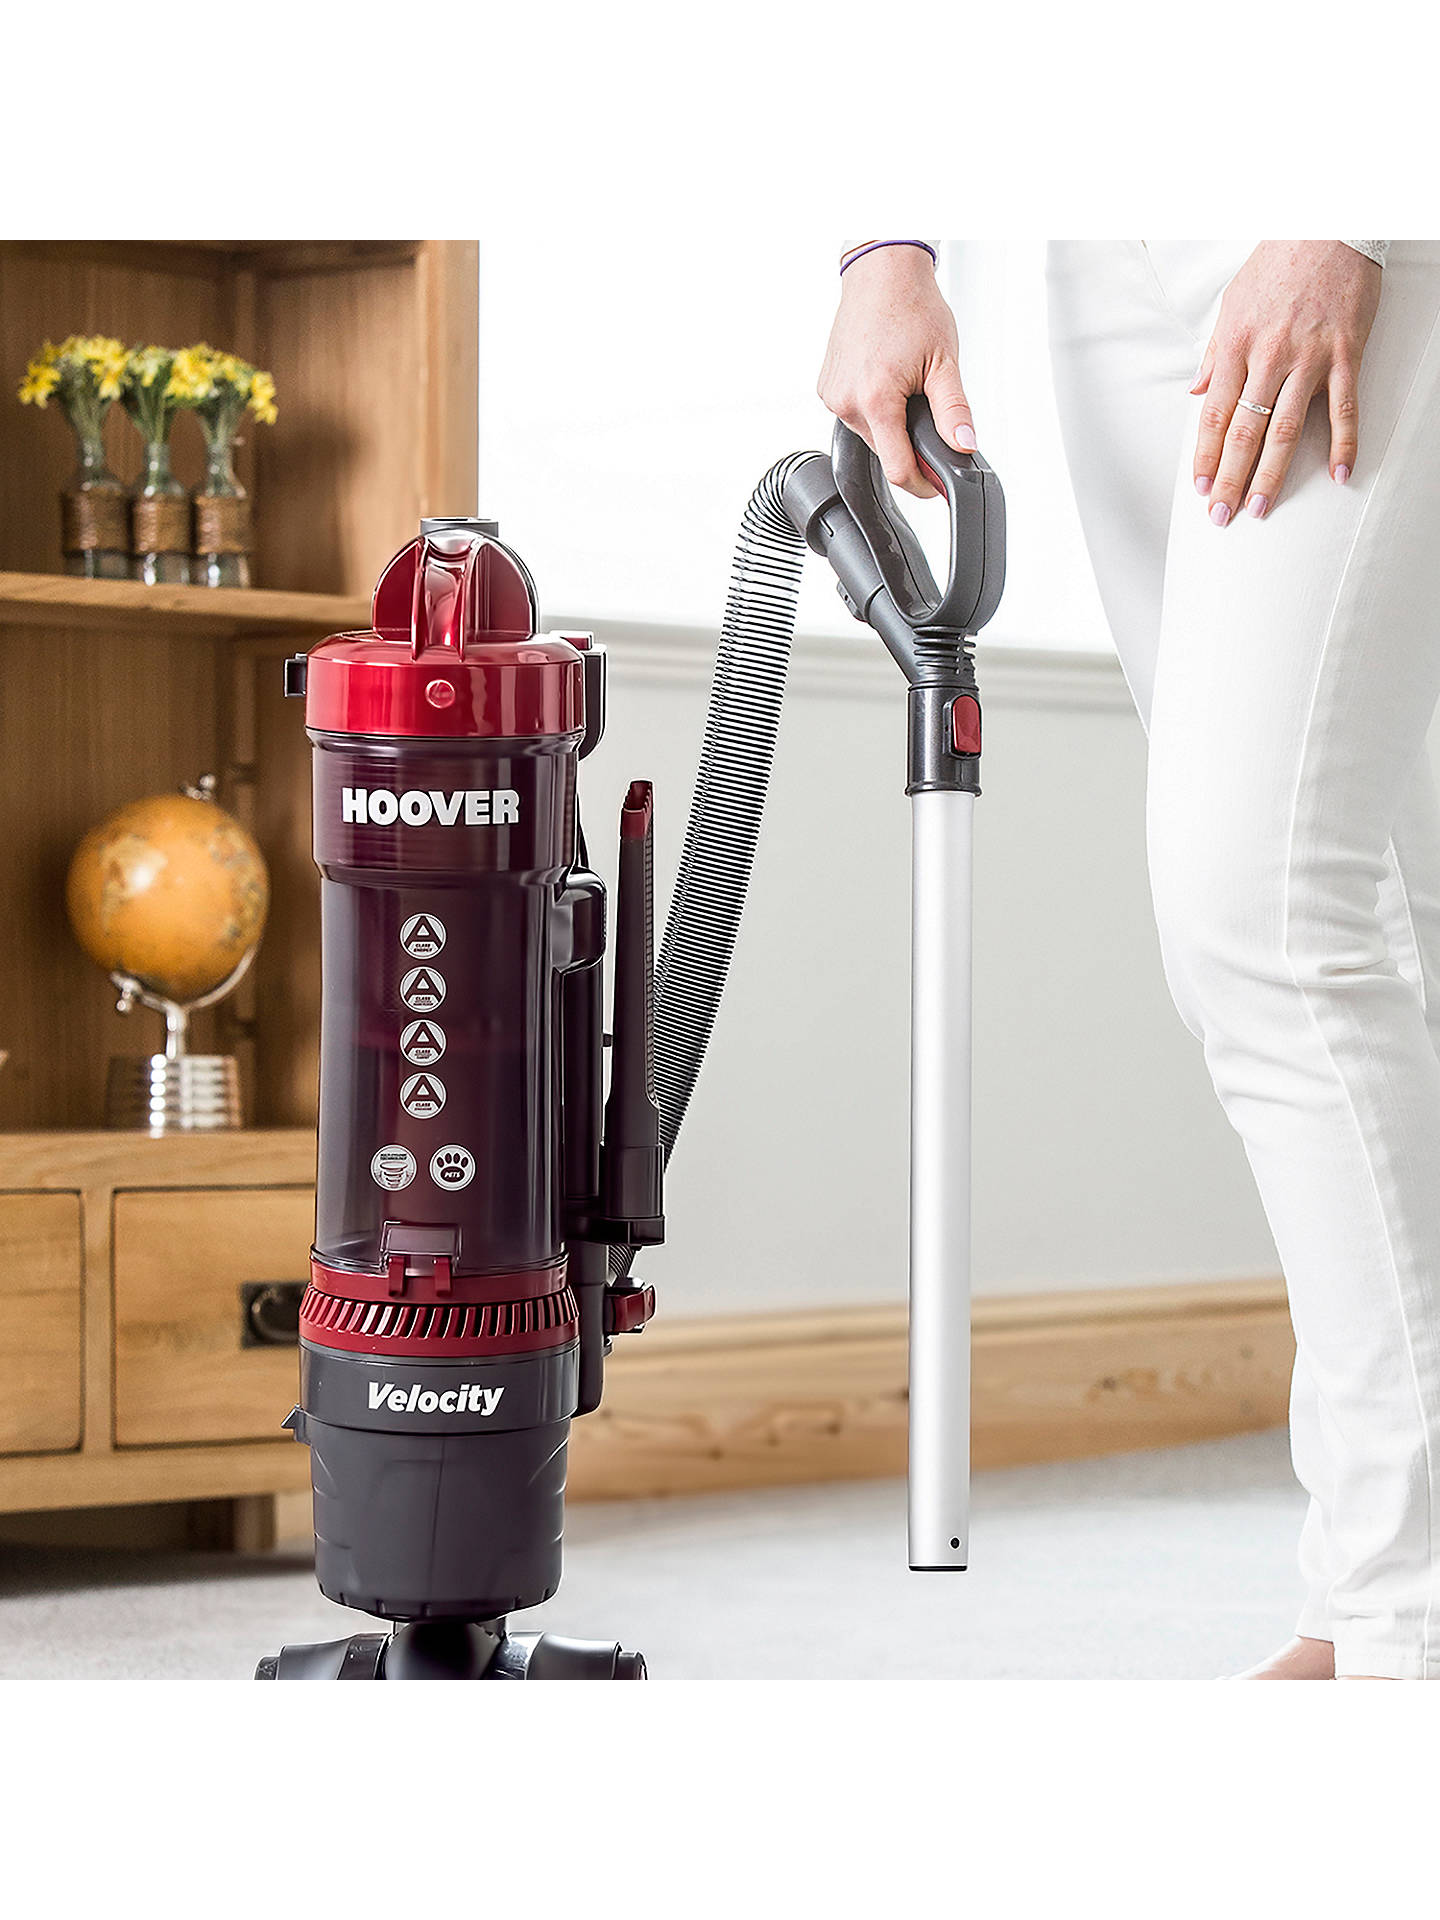 Hoover Velocity Bagless Pets Upright Vacuum Cleaner at John